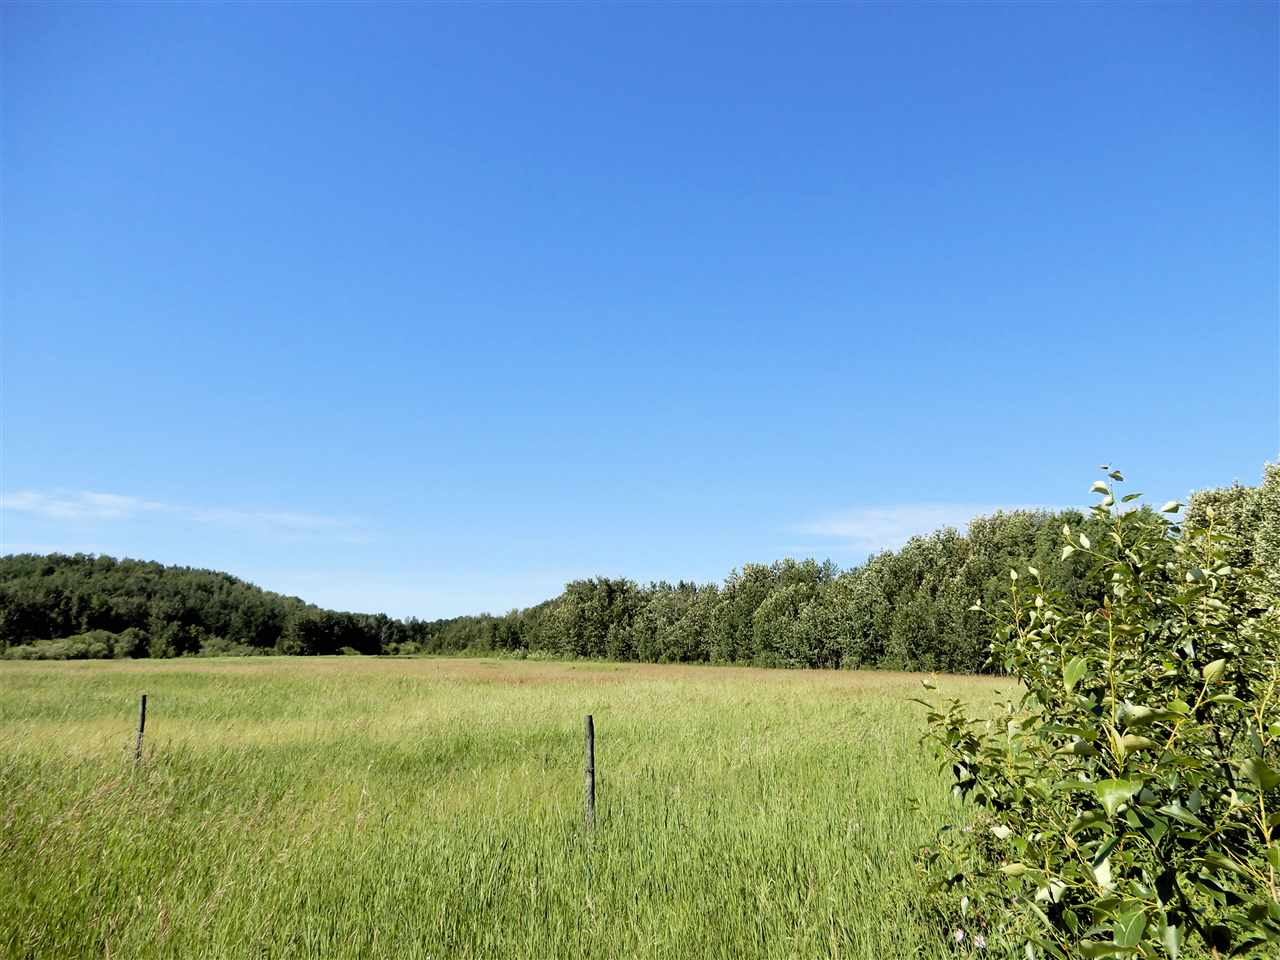 Main Photo: 55230 Range Road 10: Rural Sturgeon County Rural Land/Vacant Lot for sale : MLS® # E4062247